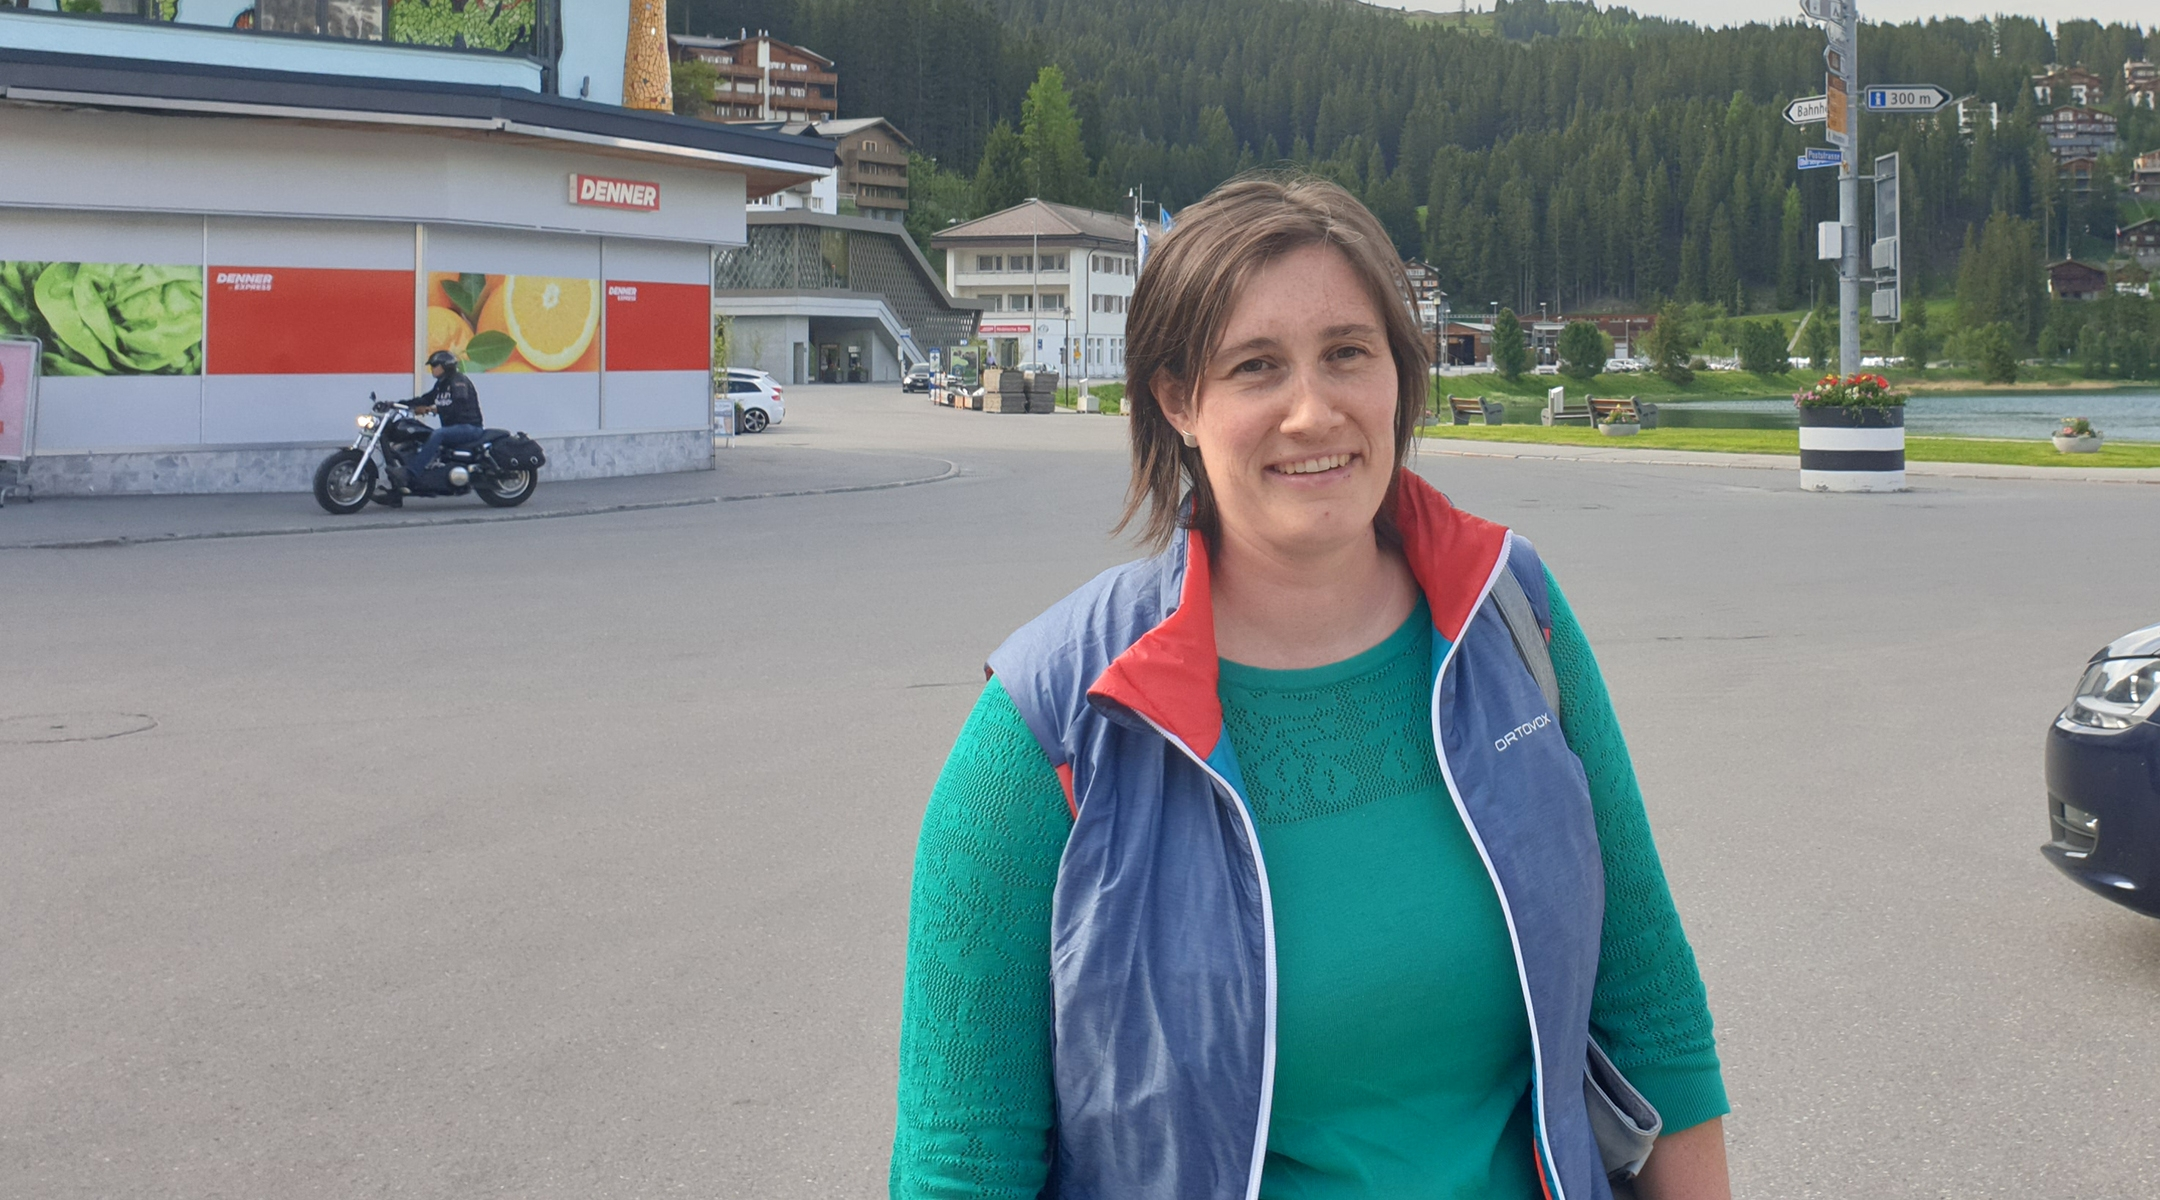 Lena Zuberbuehler returning from shopping in Arosa, Switzerland on June 14, 2019. (Cnaan Liphshiz/JTA)